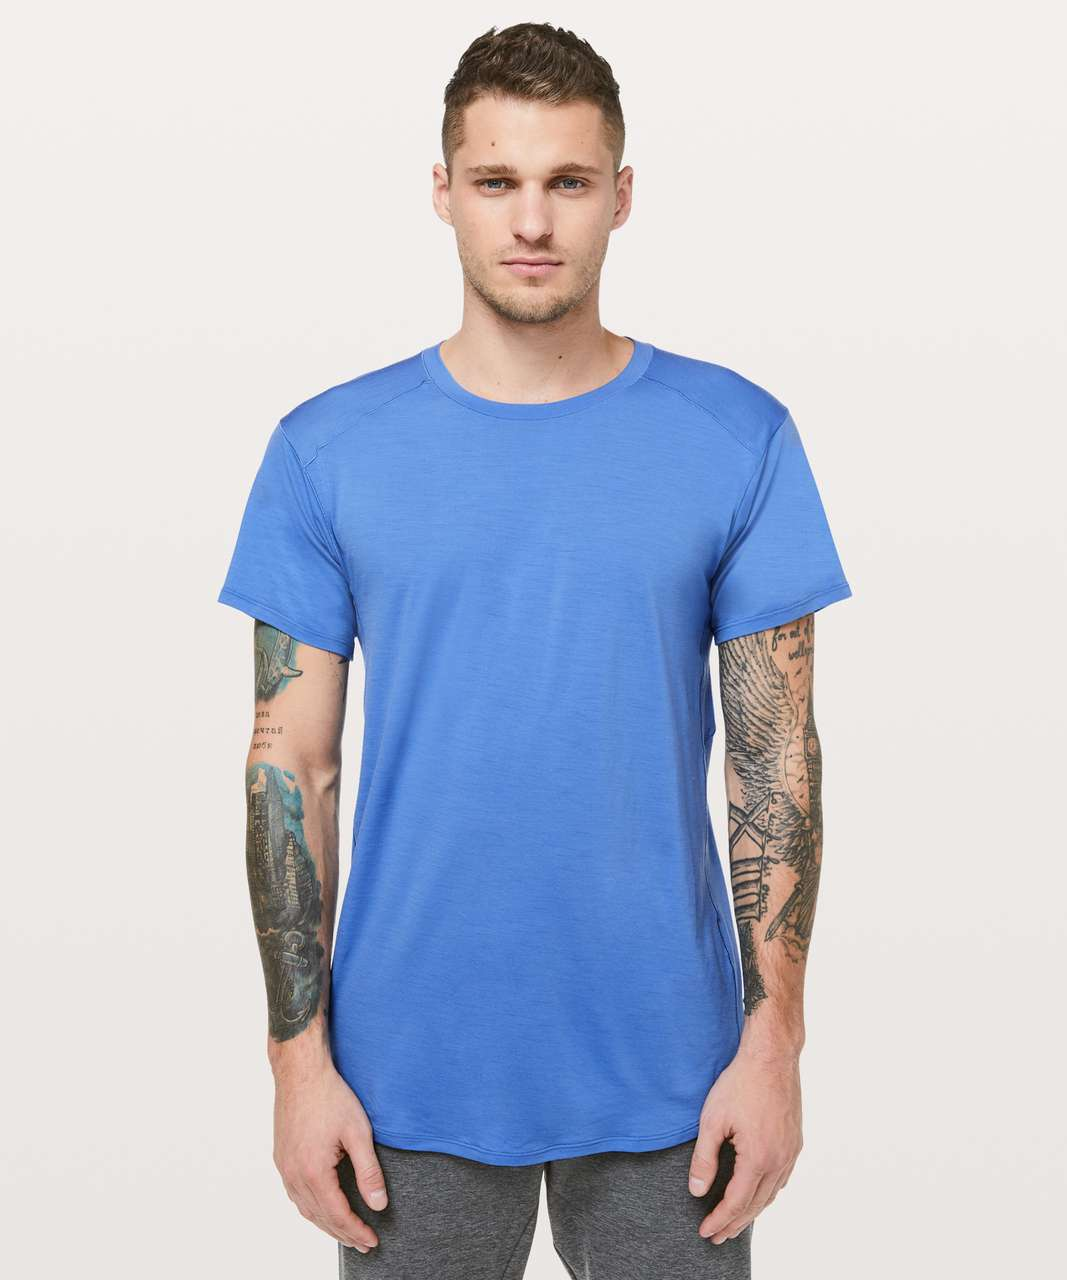 Lululemon Diffract Short Sleeve *lululemon Lab - Chromatic Blue